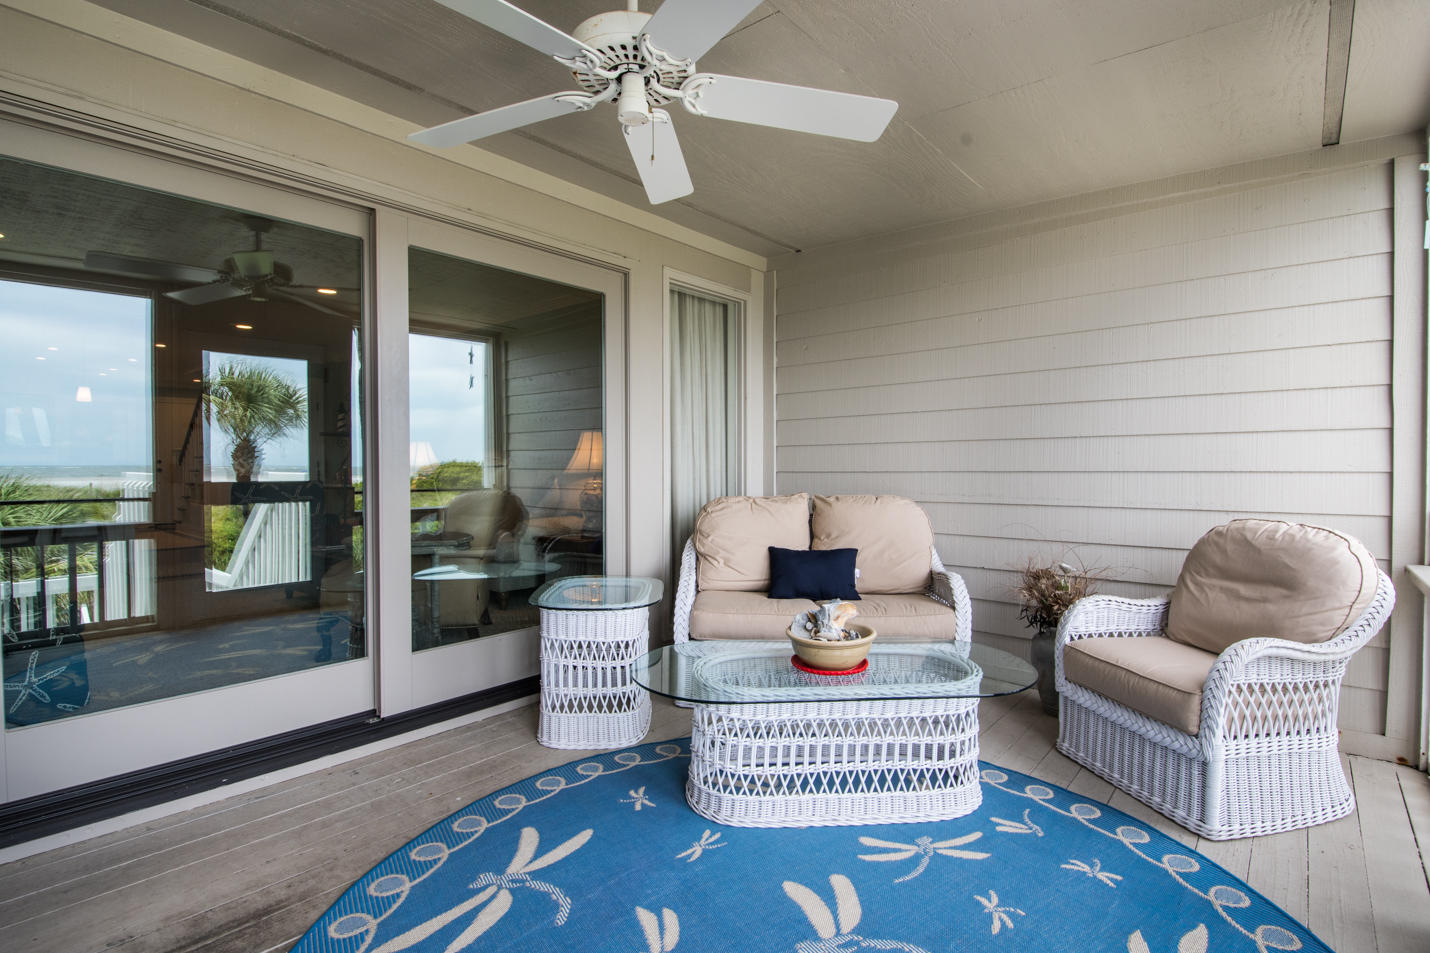 Beach Club Villas Homes For Sale - 66 Beach Club Villas, Isle of Palms, SC - 34